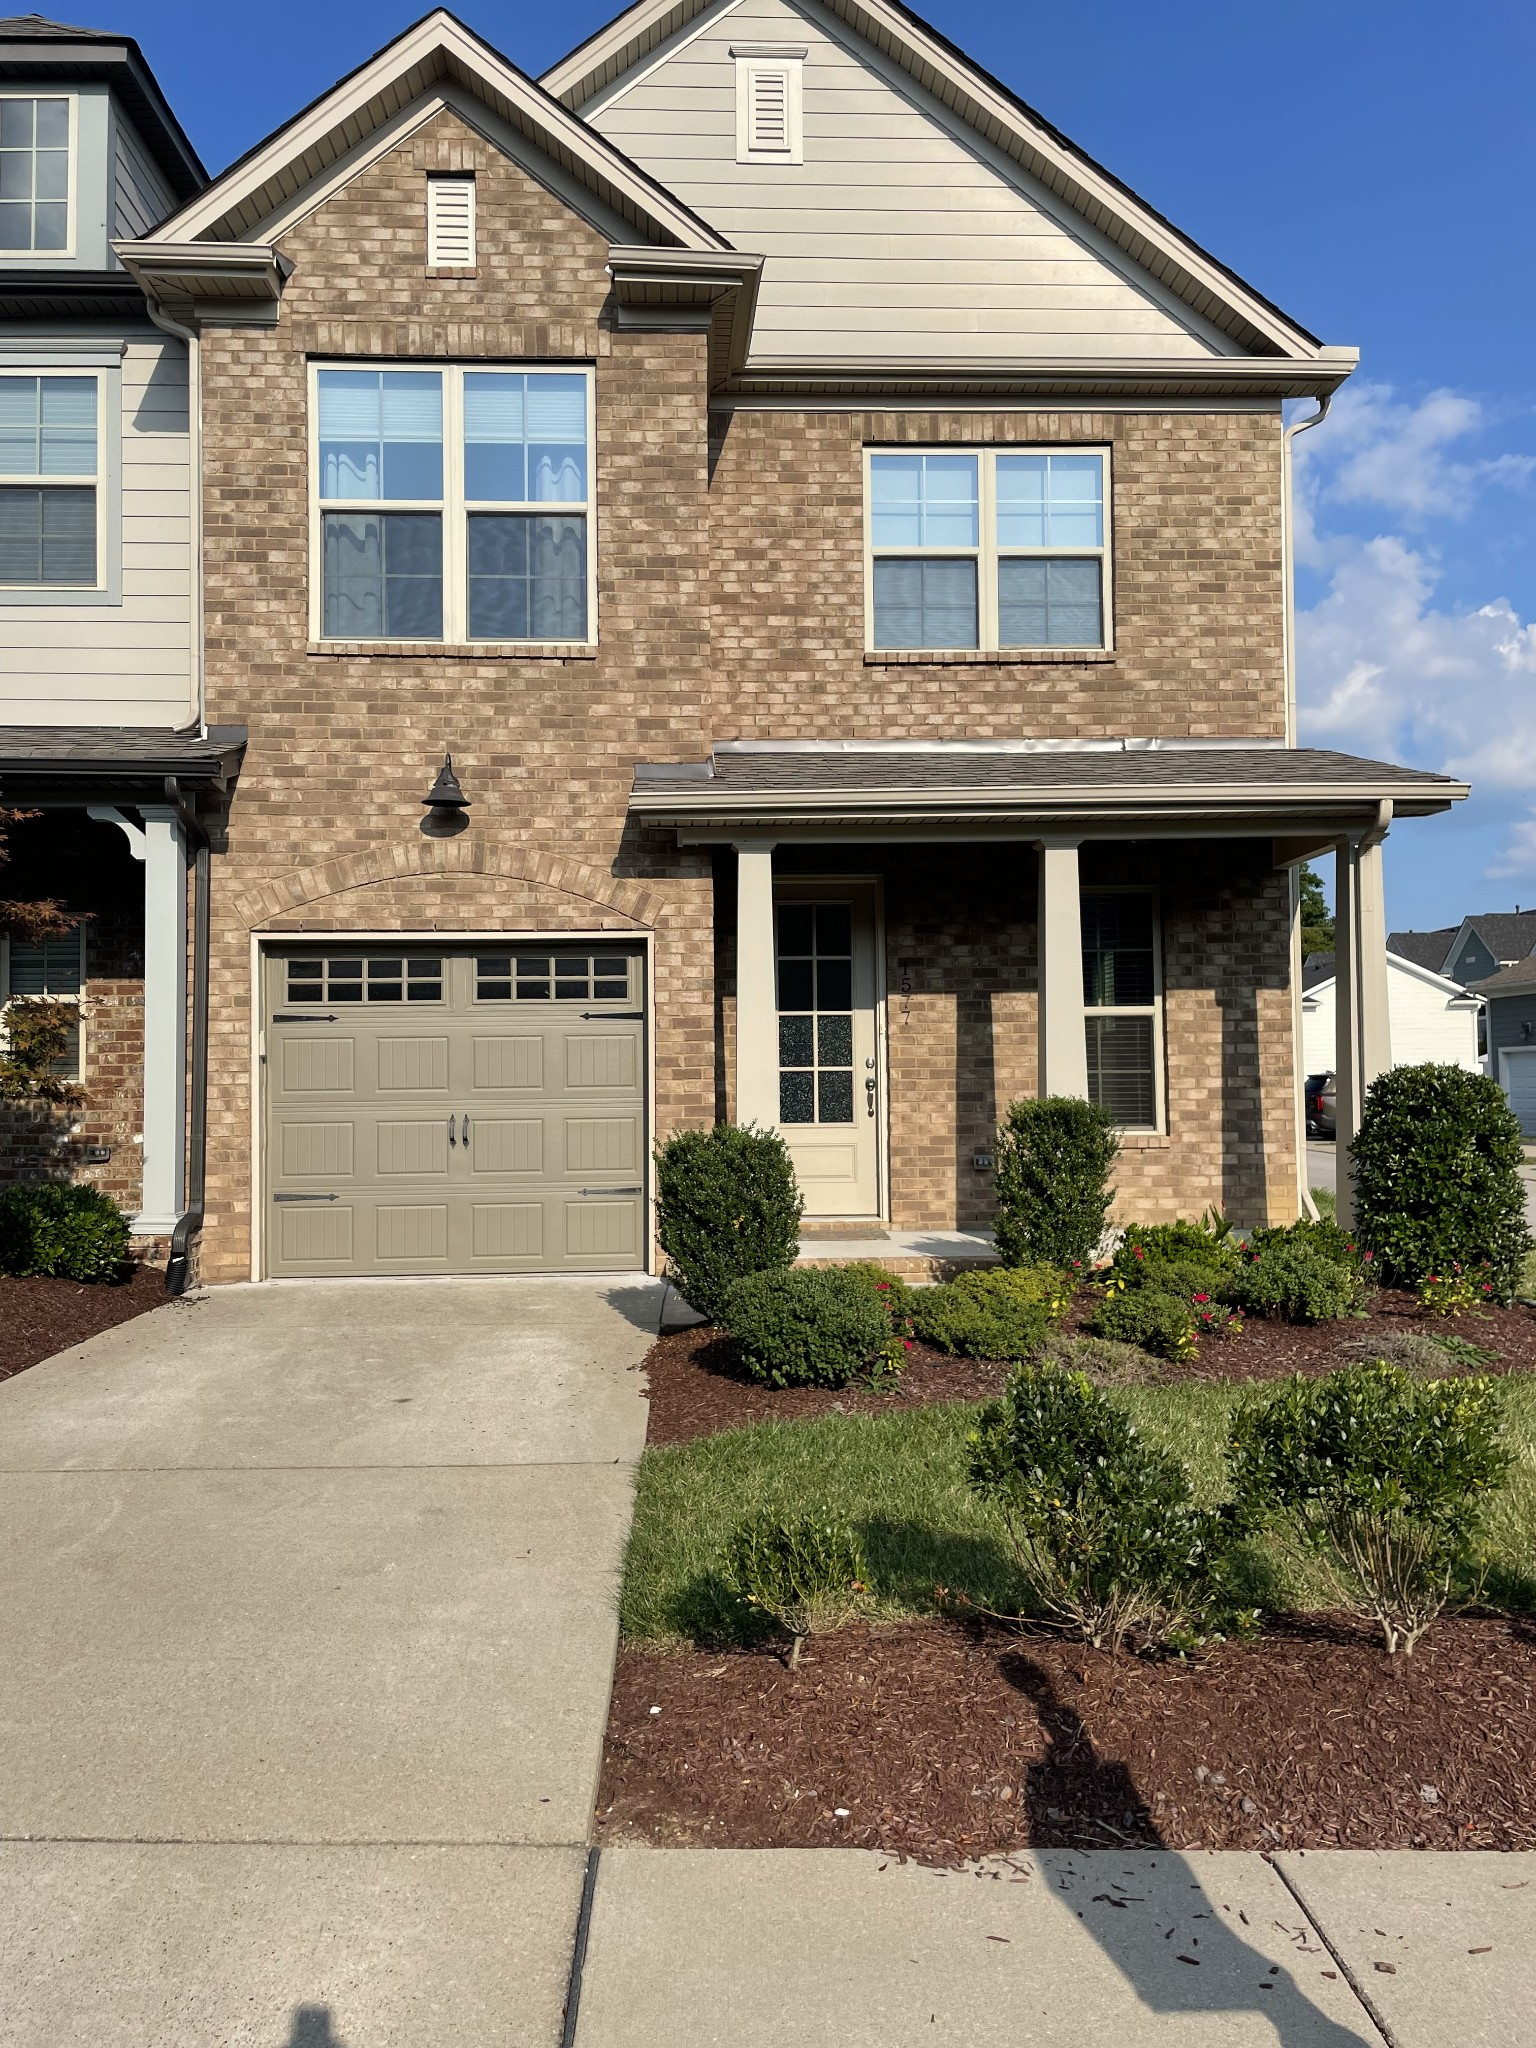 Location, Location, Location! Super convenient townhome with easy access to virtually everywhere! MASTER DOWN!! End unit. Virtually flawless interior, ready for quick closing if needed. Home has great storage, generous sized rooms and modern touches. The wood floors and stairs are a beautiful contrast to the lighter tones and high ceilings. Ready for showings Friday August 27, 2021.